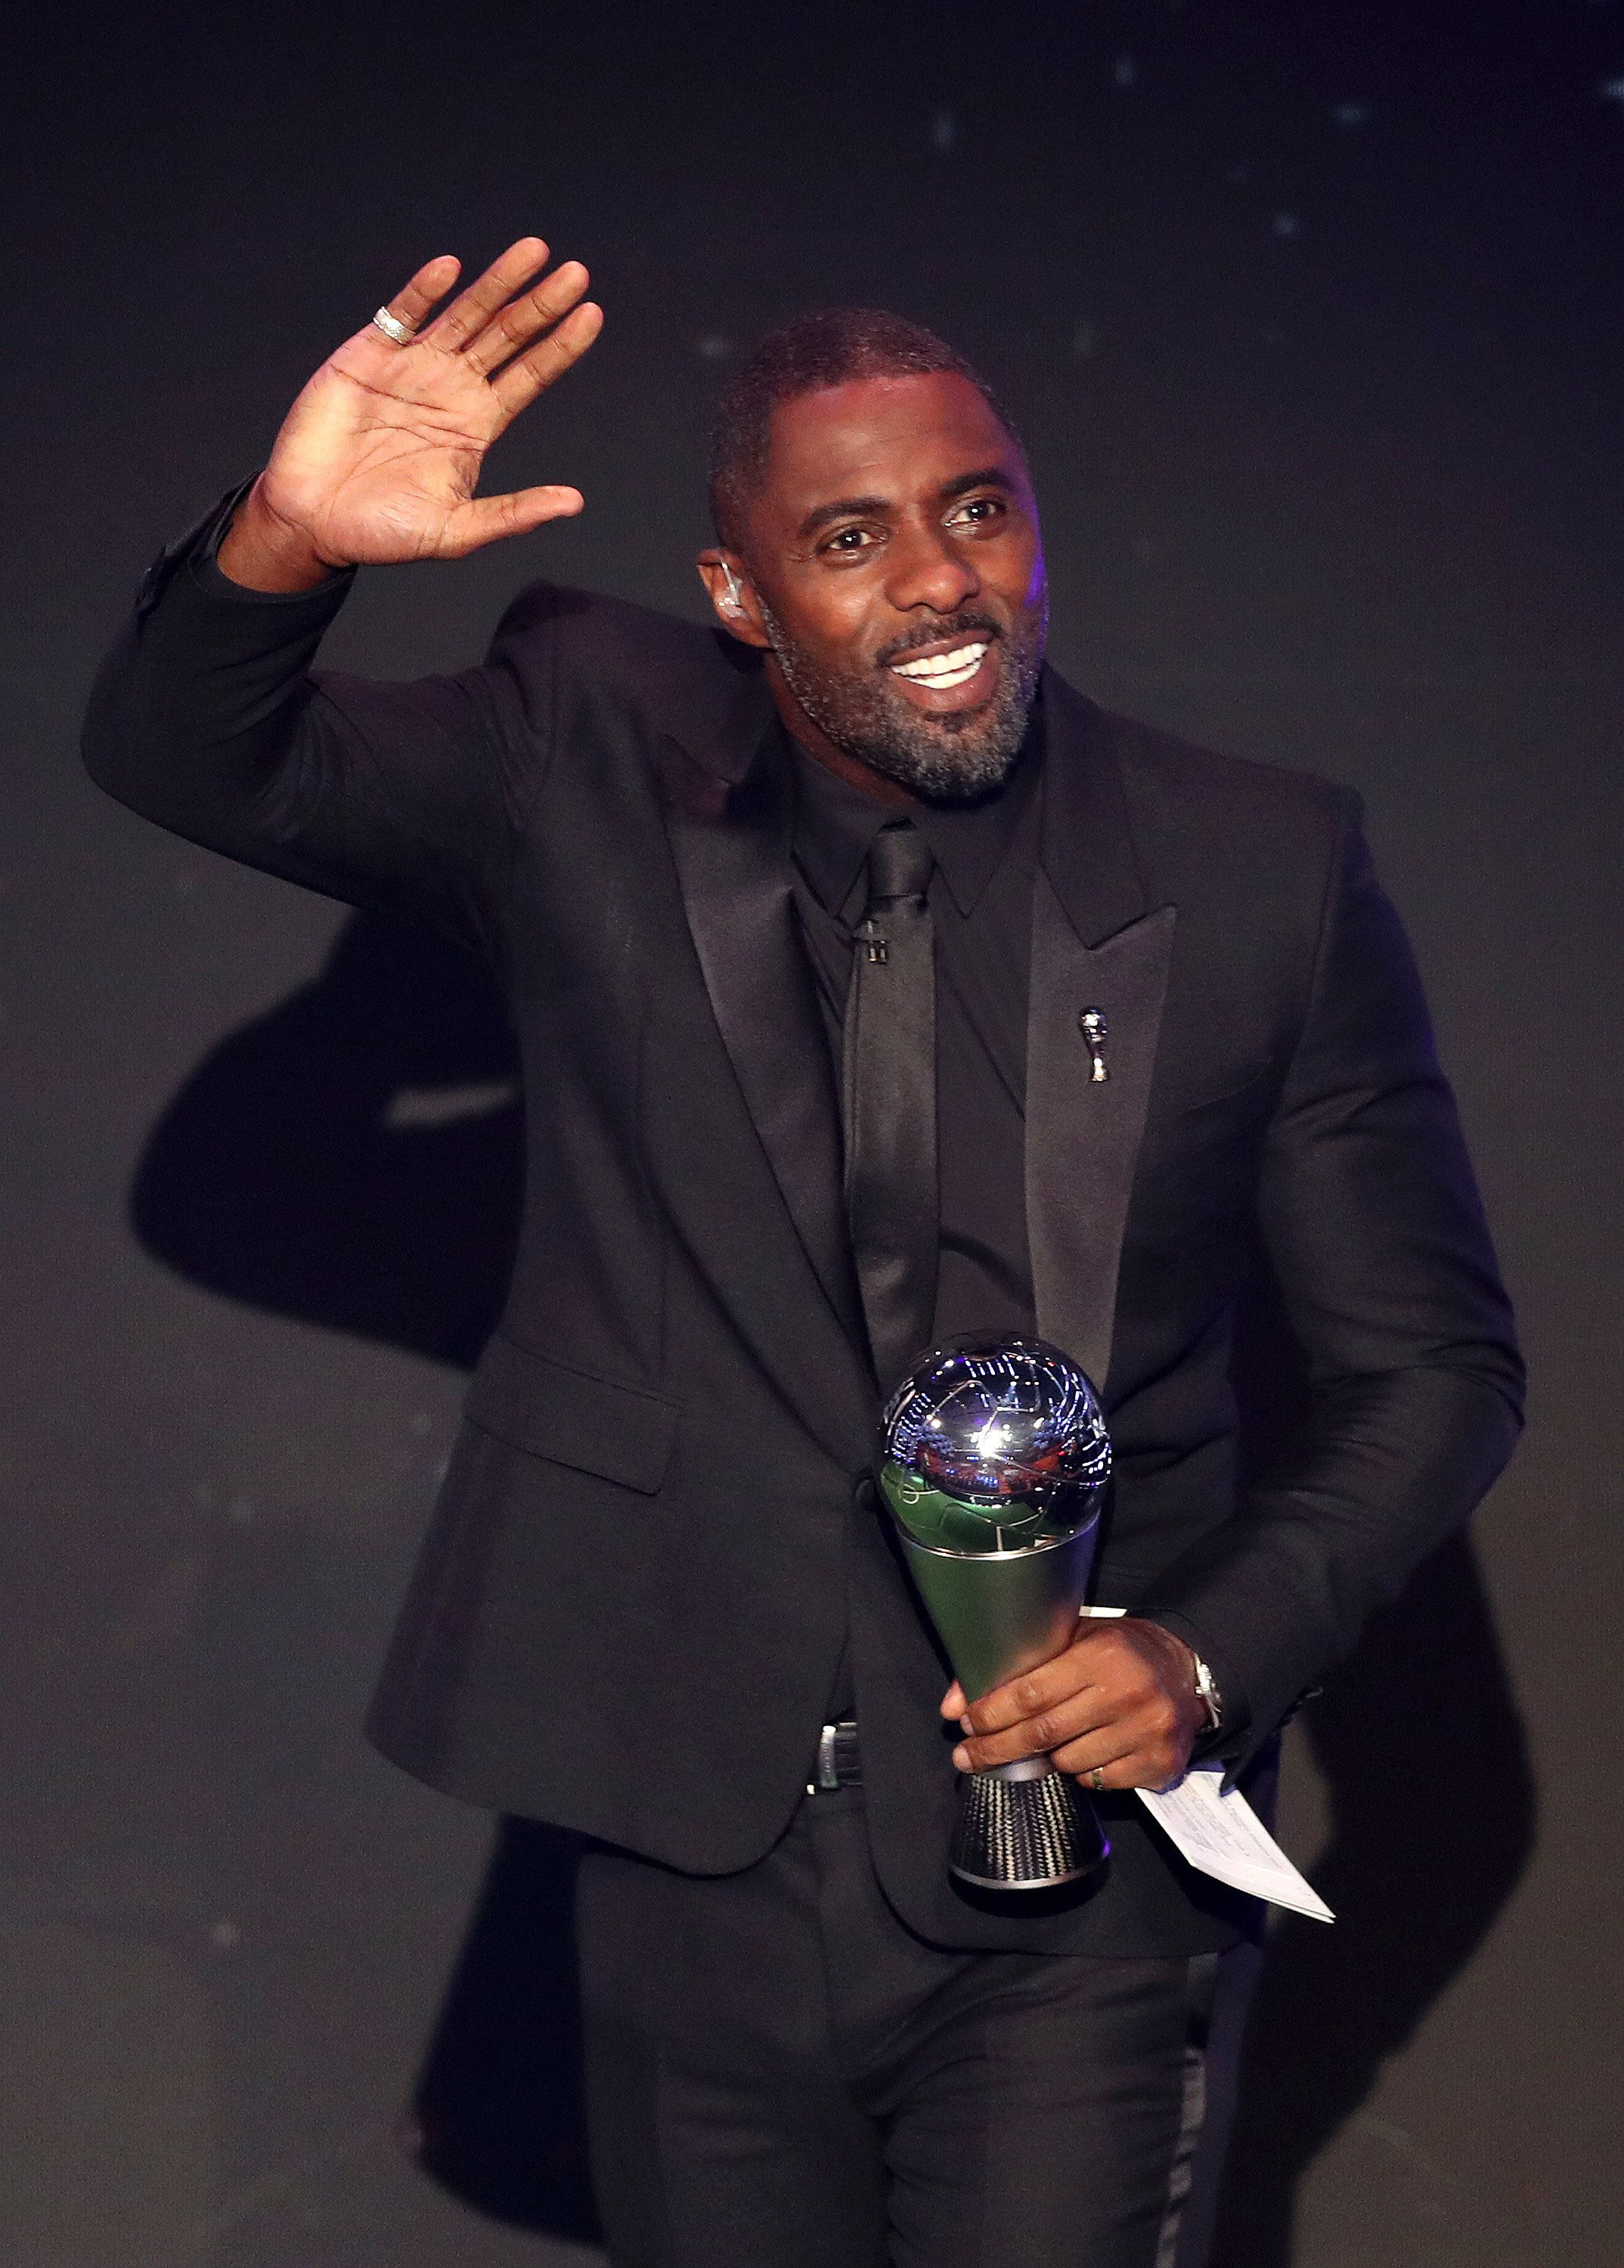 Idris Elba Will Star In 'Cats' With Taylor Swift, James Corden